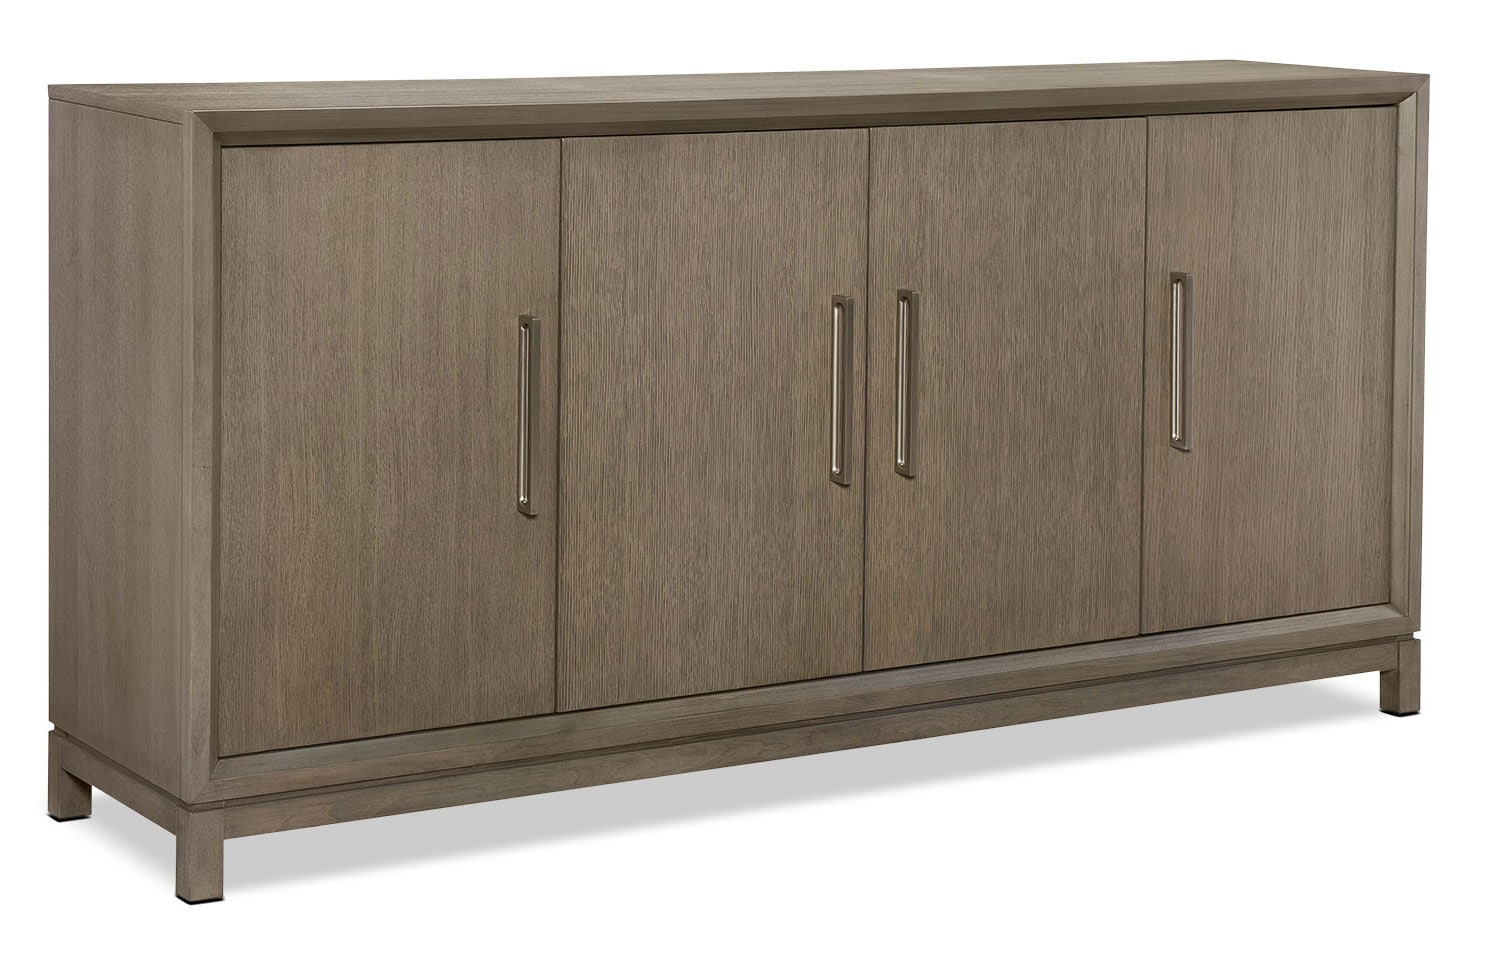 Dining Room Furniture - Rachael Ray Highline Credenza - Greige